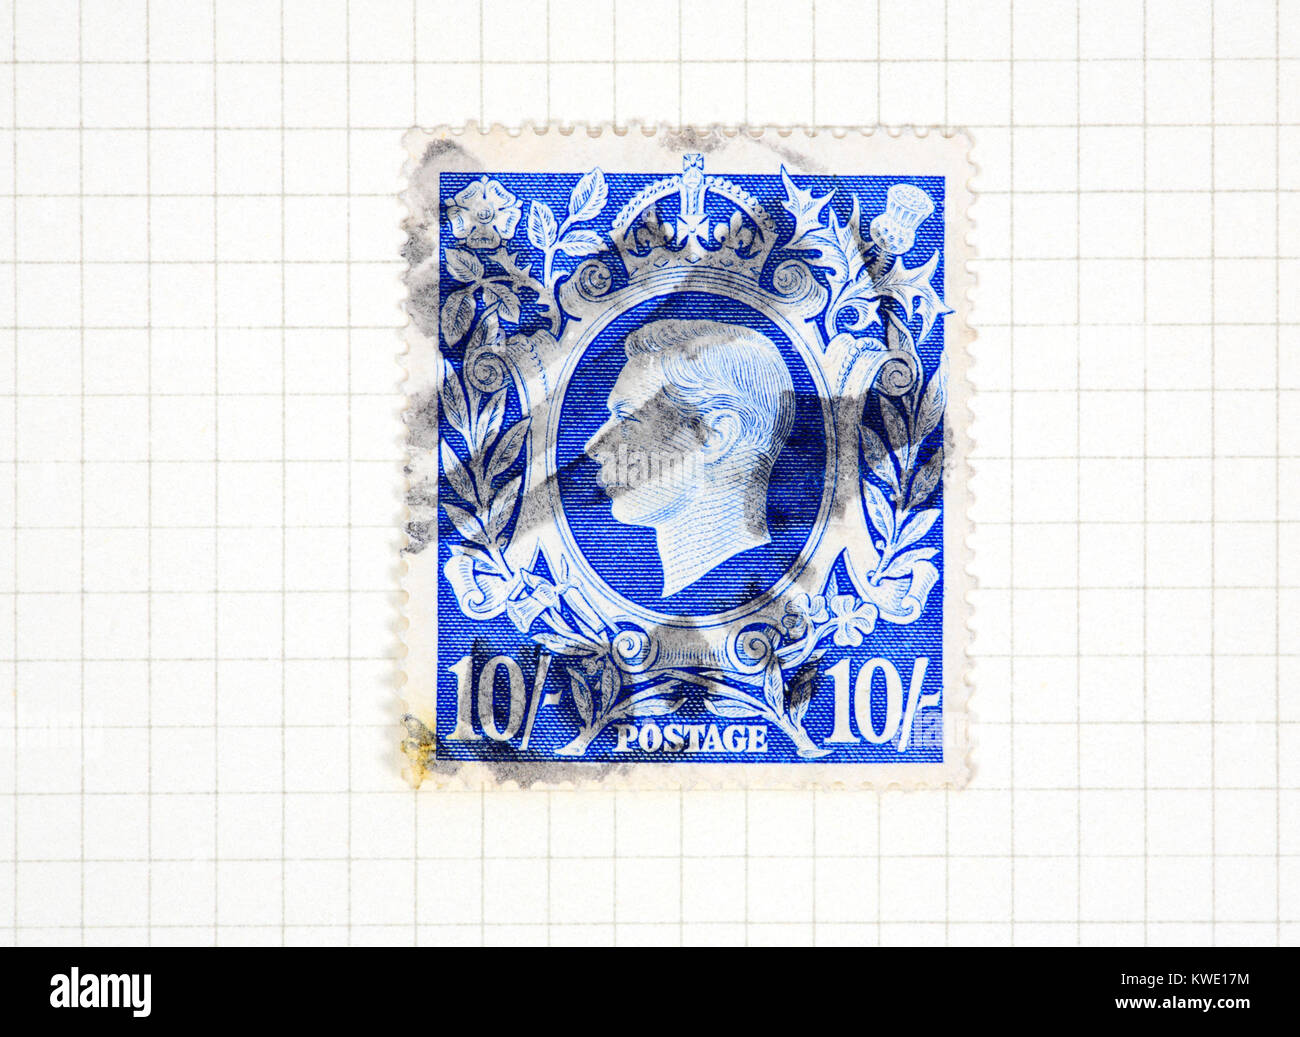 A used King George VI 10s bright blue stamp of 1939-48 issue from a collection of British stamps. - Stock Image